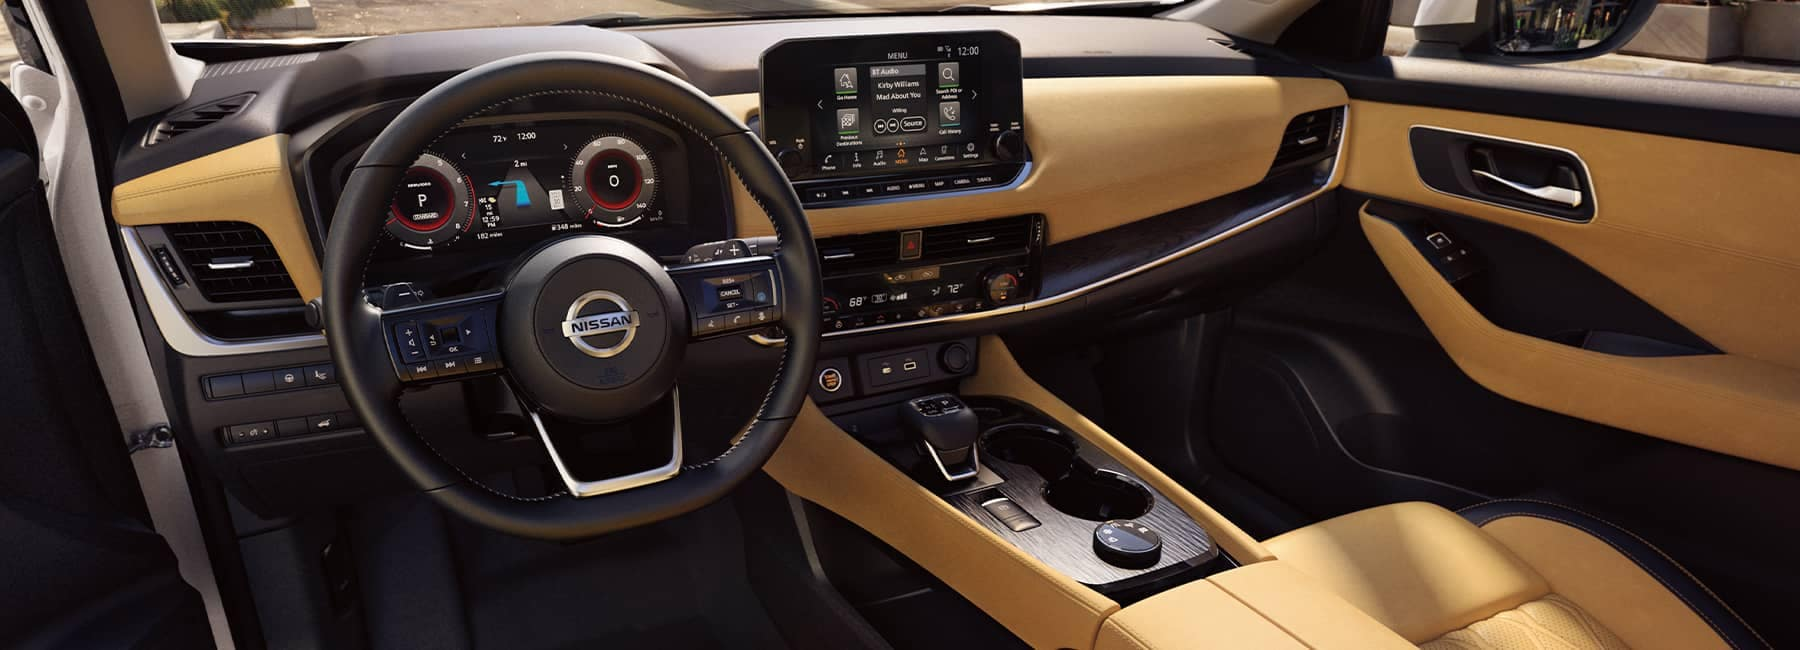 The black and tan leather interior of a 2021 Nissan Rogue